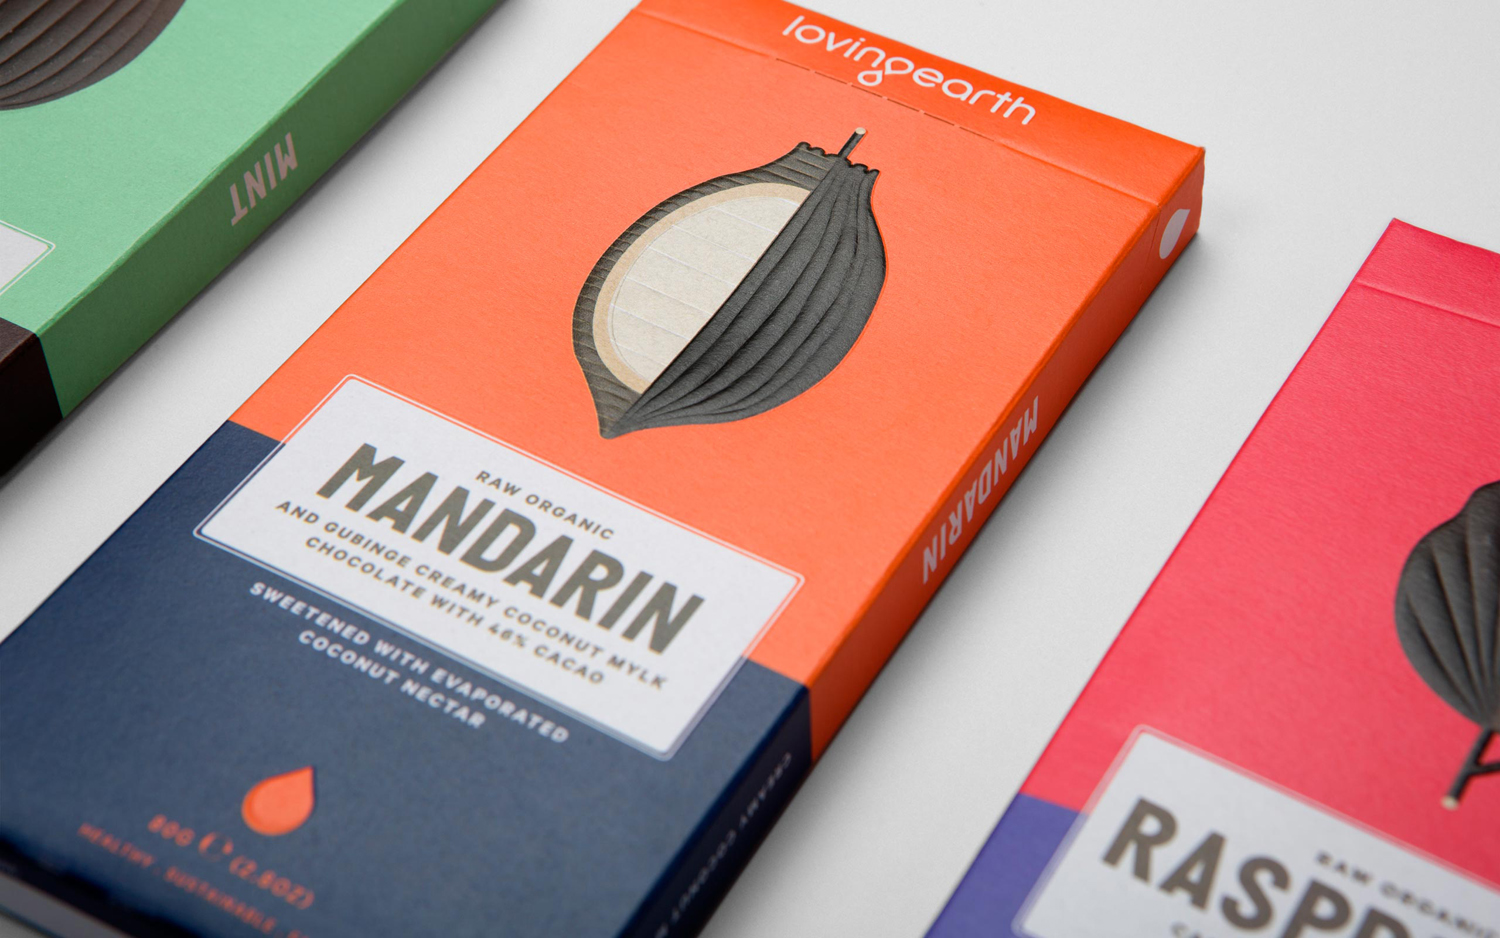 Package design for Loving Earth raw chocolate by graphic design studio Round